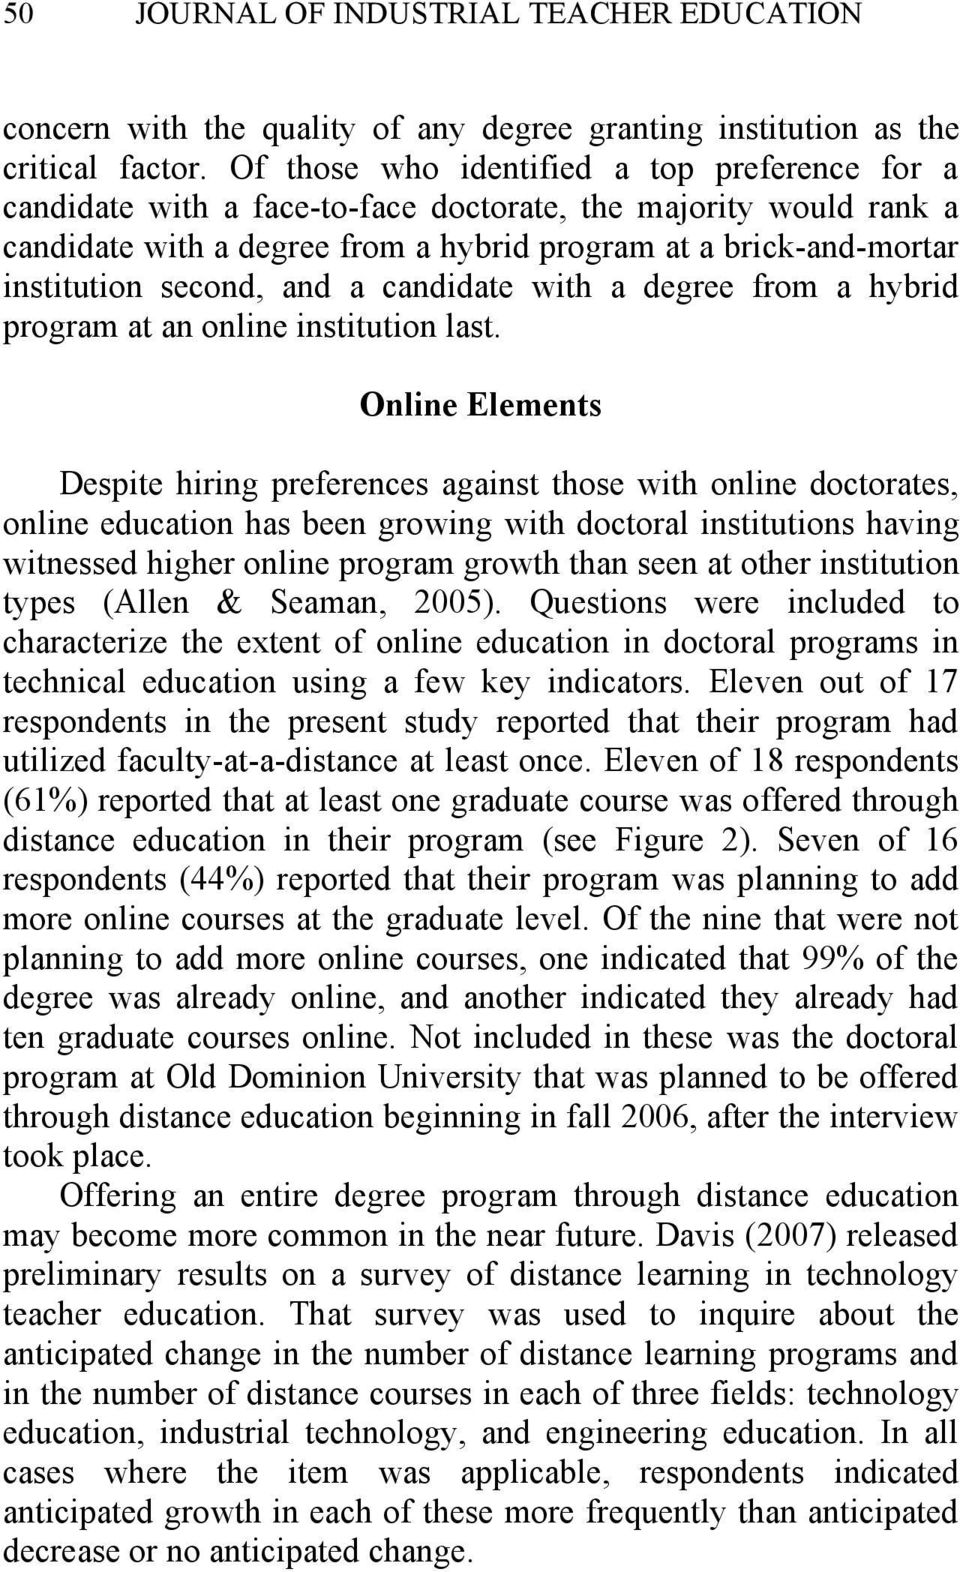 second, and a candidate with a degree from a hybrid program at an online institution last.